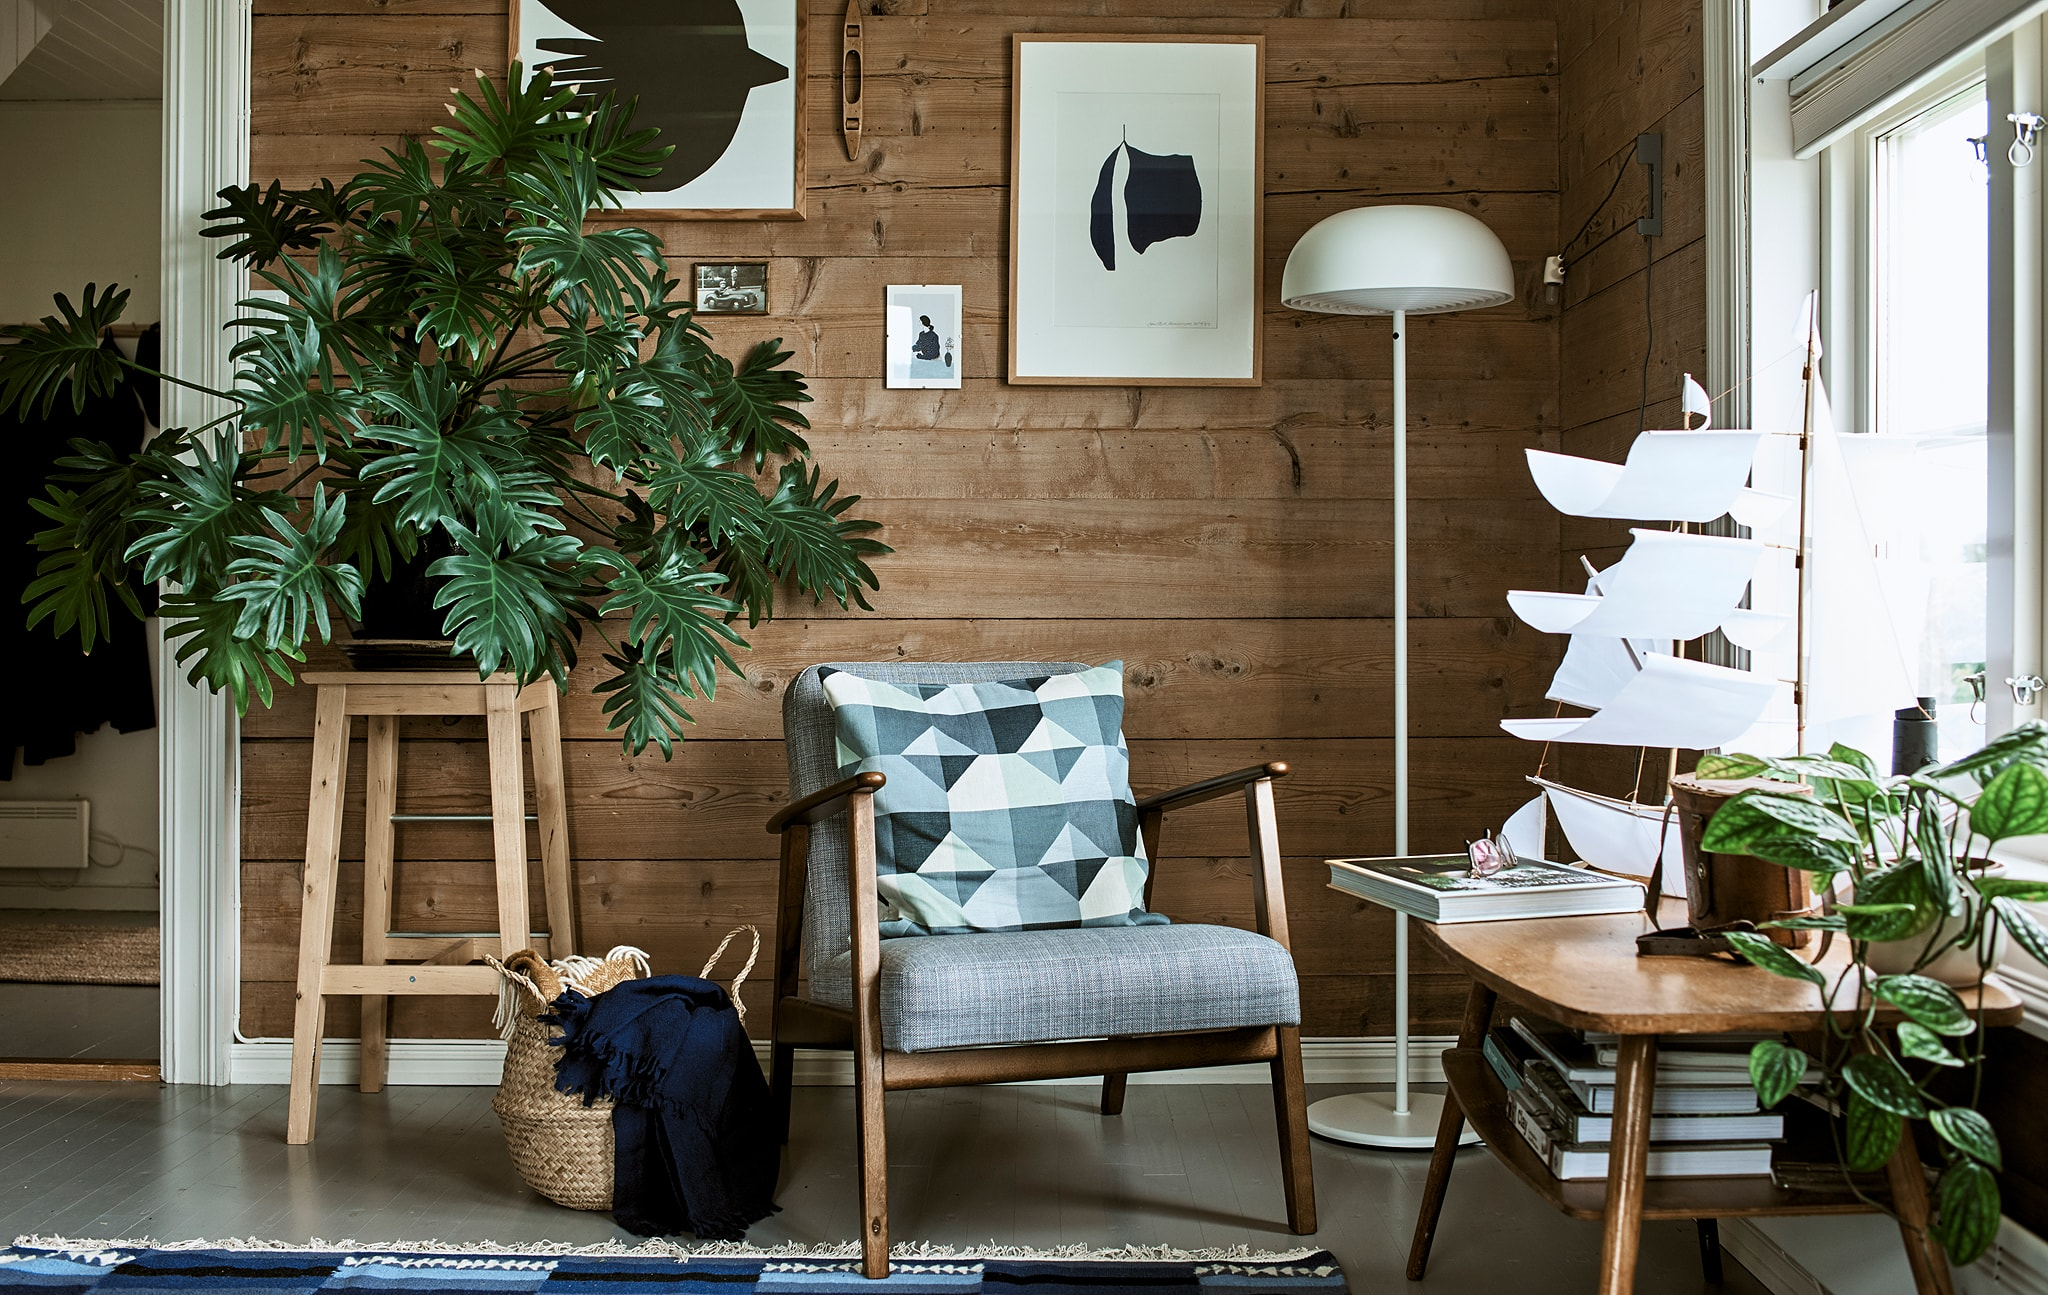 A rustic living room with a wood-framed armchair, white floor lamp and stool used as a plant stand for a big leafy plant.